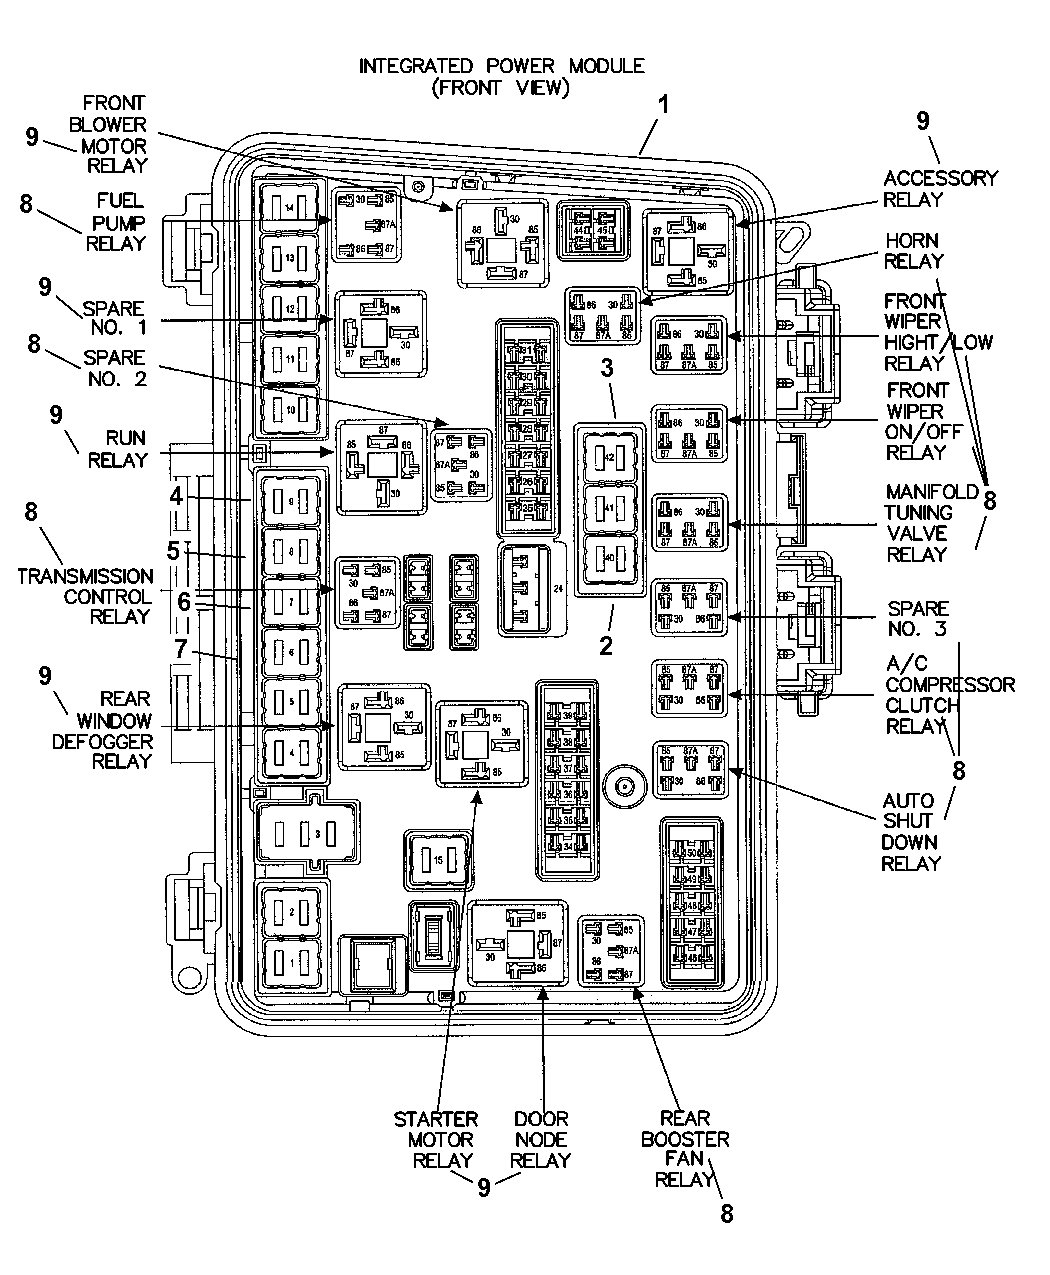 DIAGRAM] Wiring Diagram 2004 Chrysler Pacifica - 2002 Bmw 325i Fuse Diagram  List audio.mon1erinstrument.fr